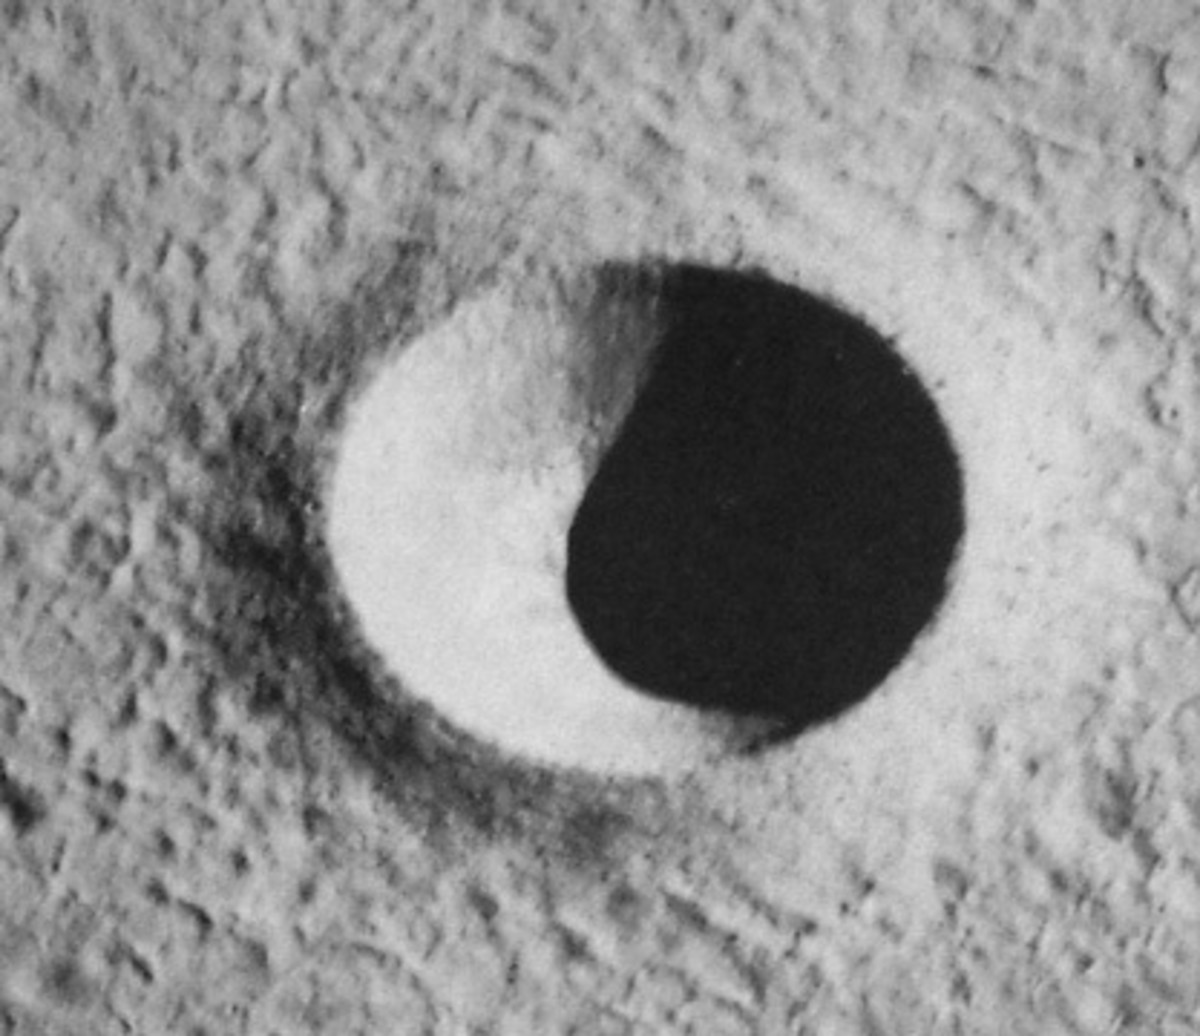 A simple lunar crater; circular and bowl-shaped.